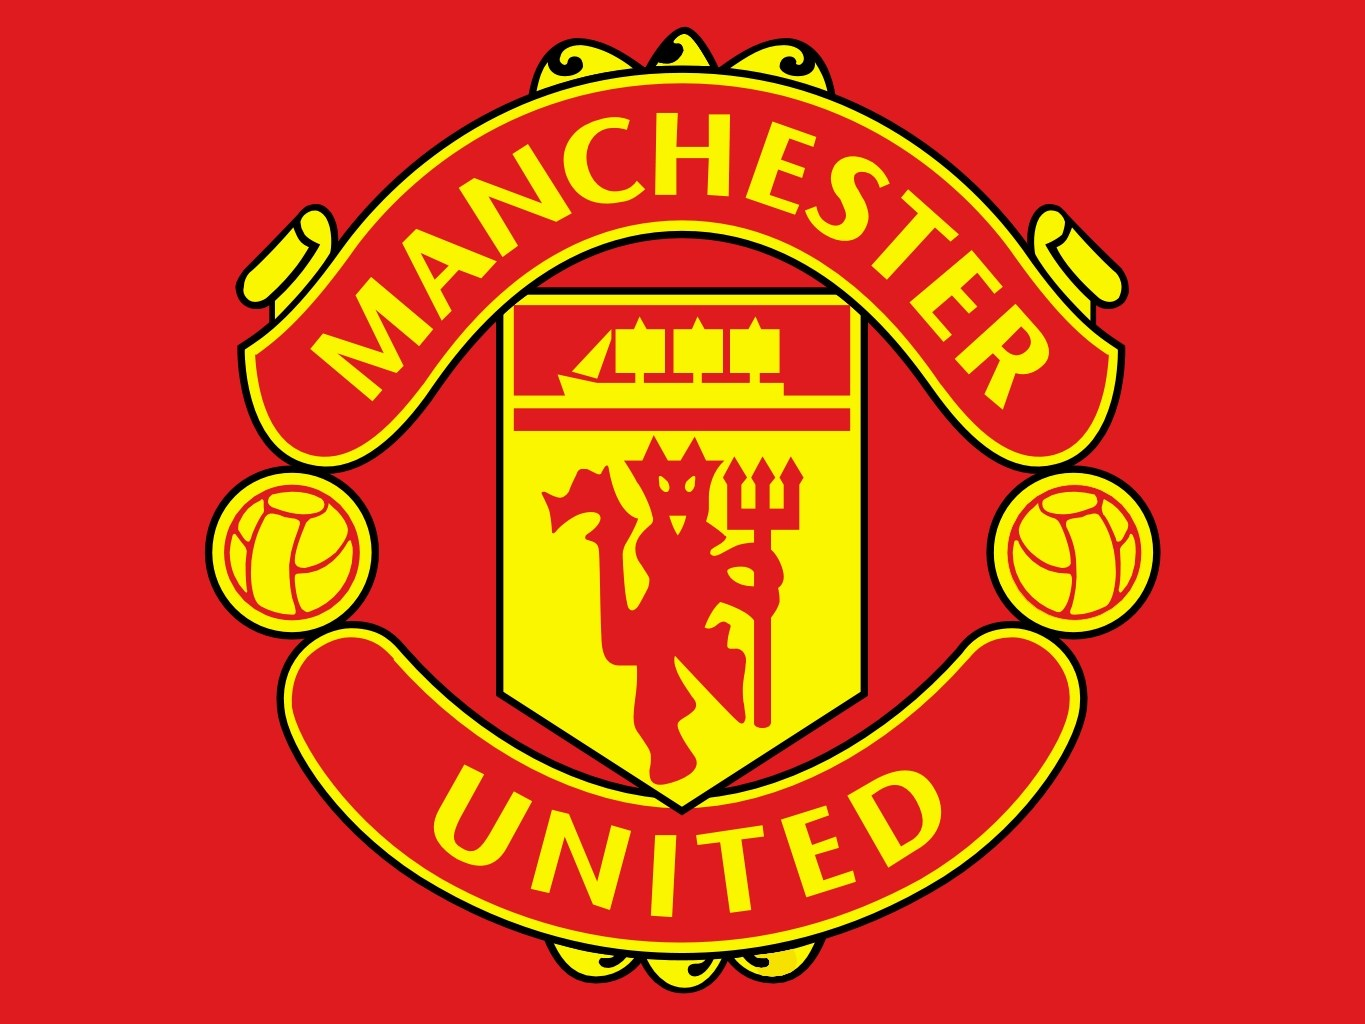 Man utd clipart svg free library Manchester united clipart 3 » Clipart Portal svg free library